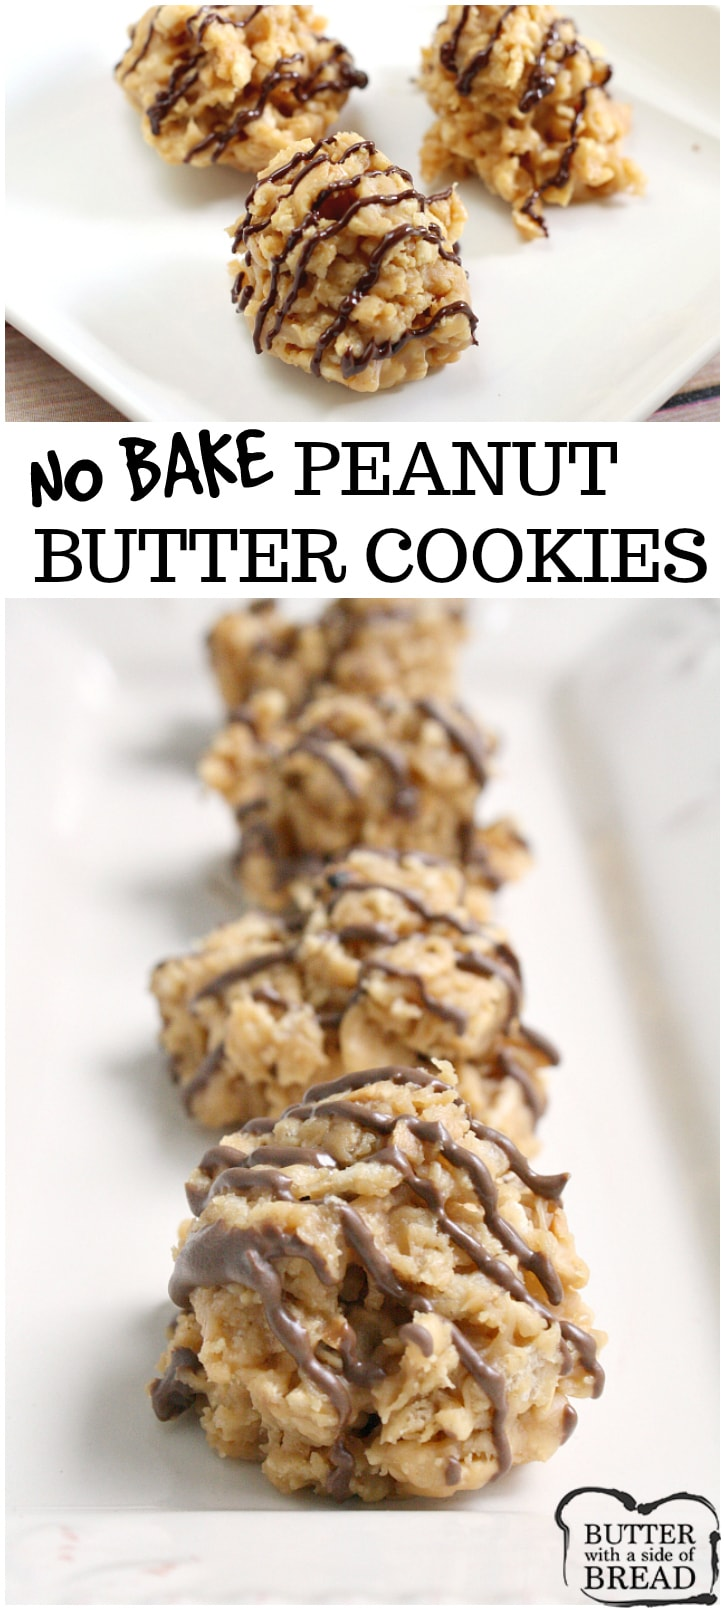 No Bake Peanut Butter Cookies are crunchy, sweet and full of flavor and they only take a few minutes start to finish to make!